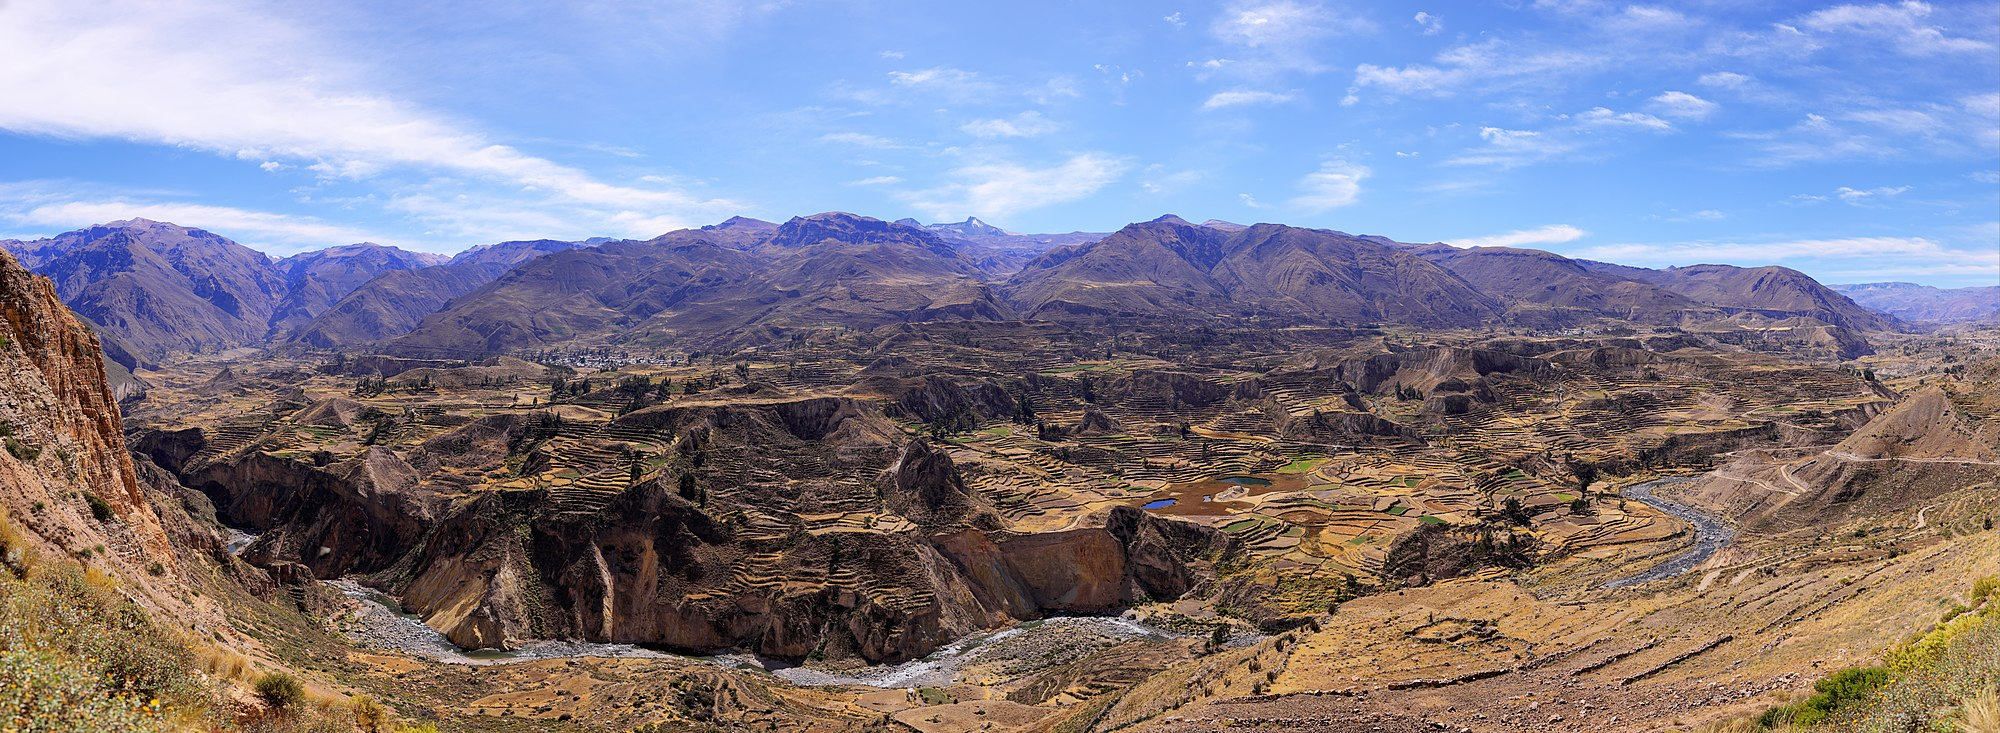 205 - Vallée de Colca - Panorama - Juin 2010 - downsample.jpg